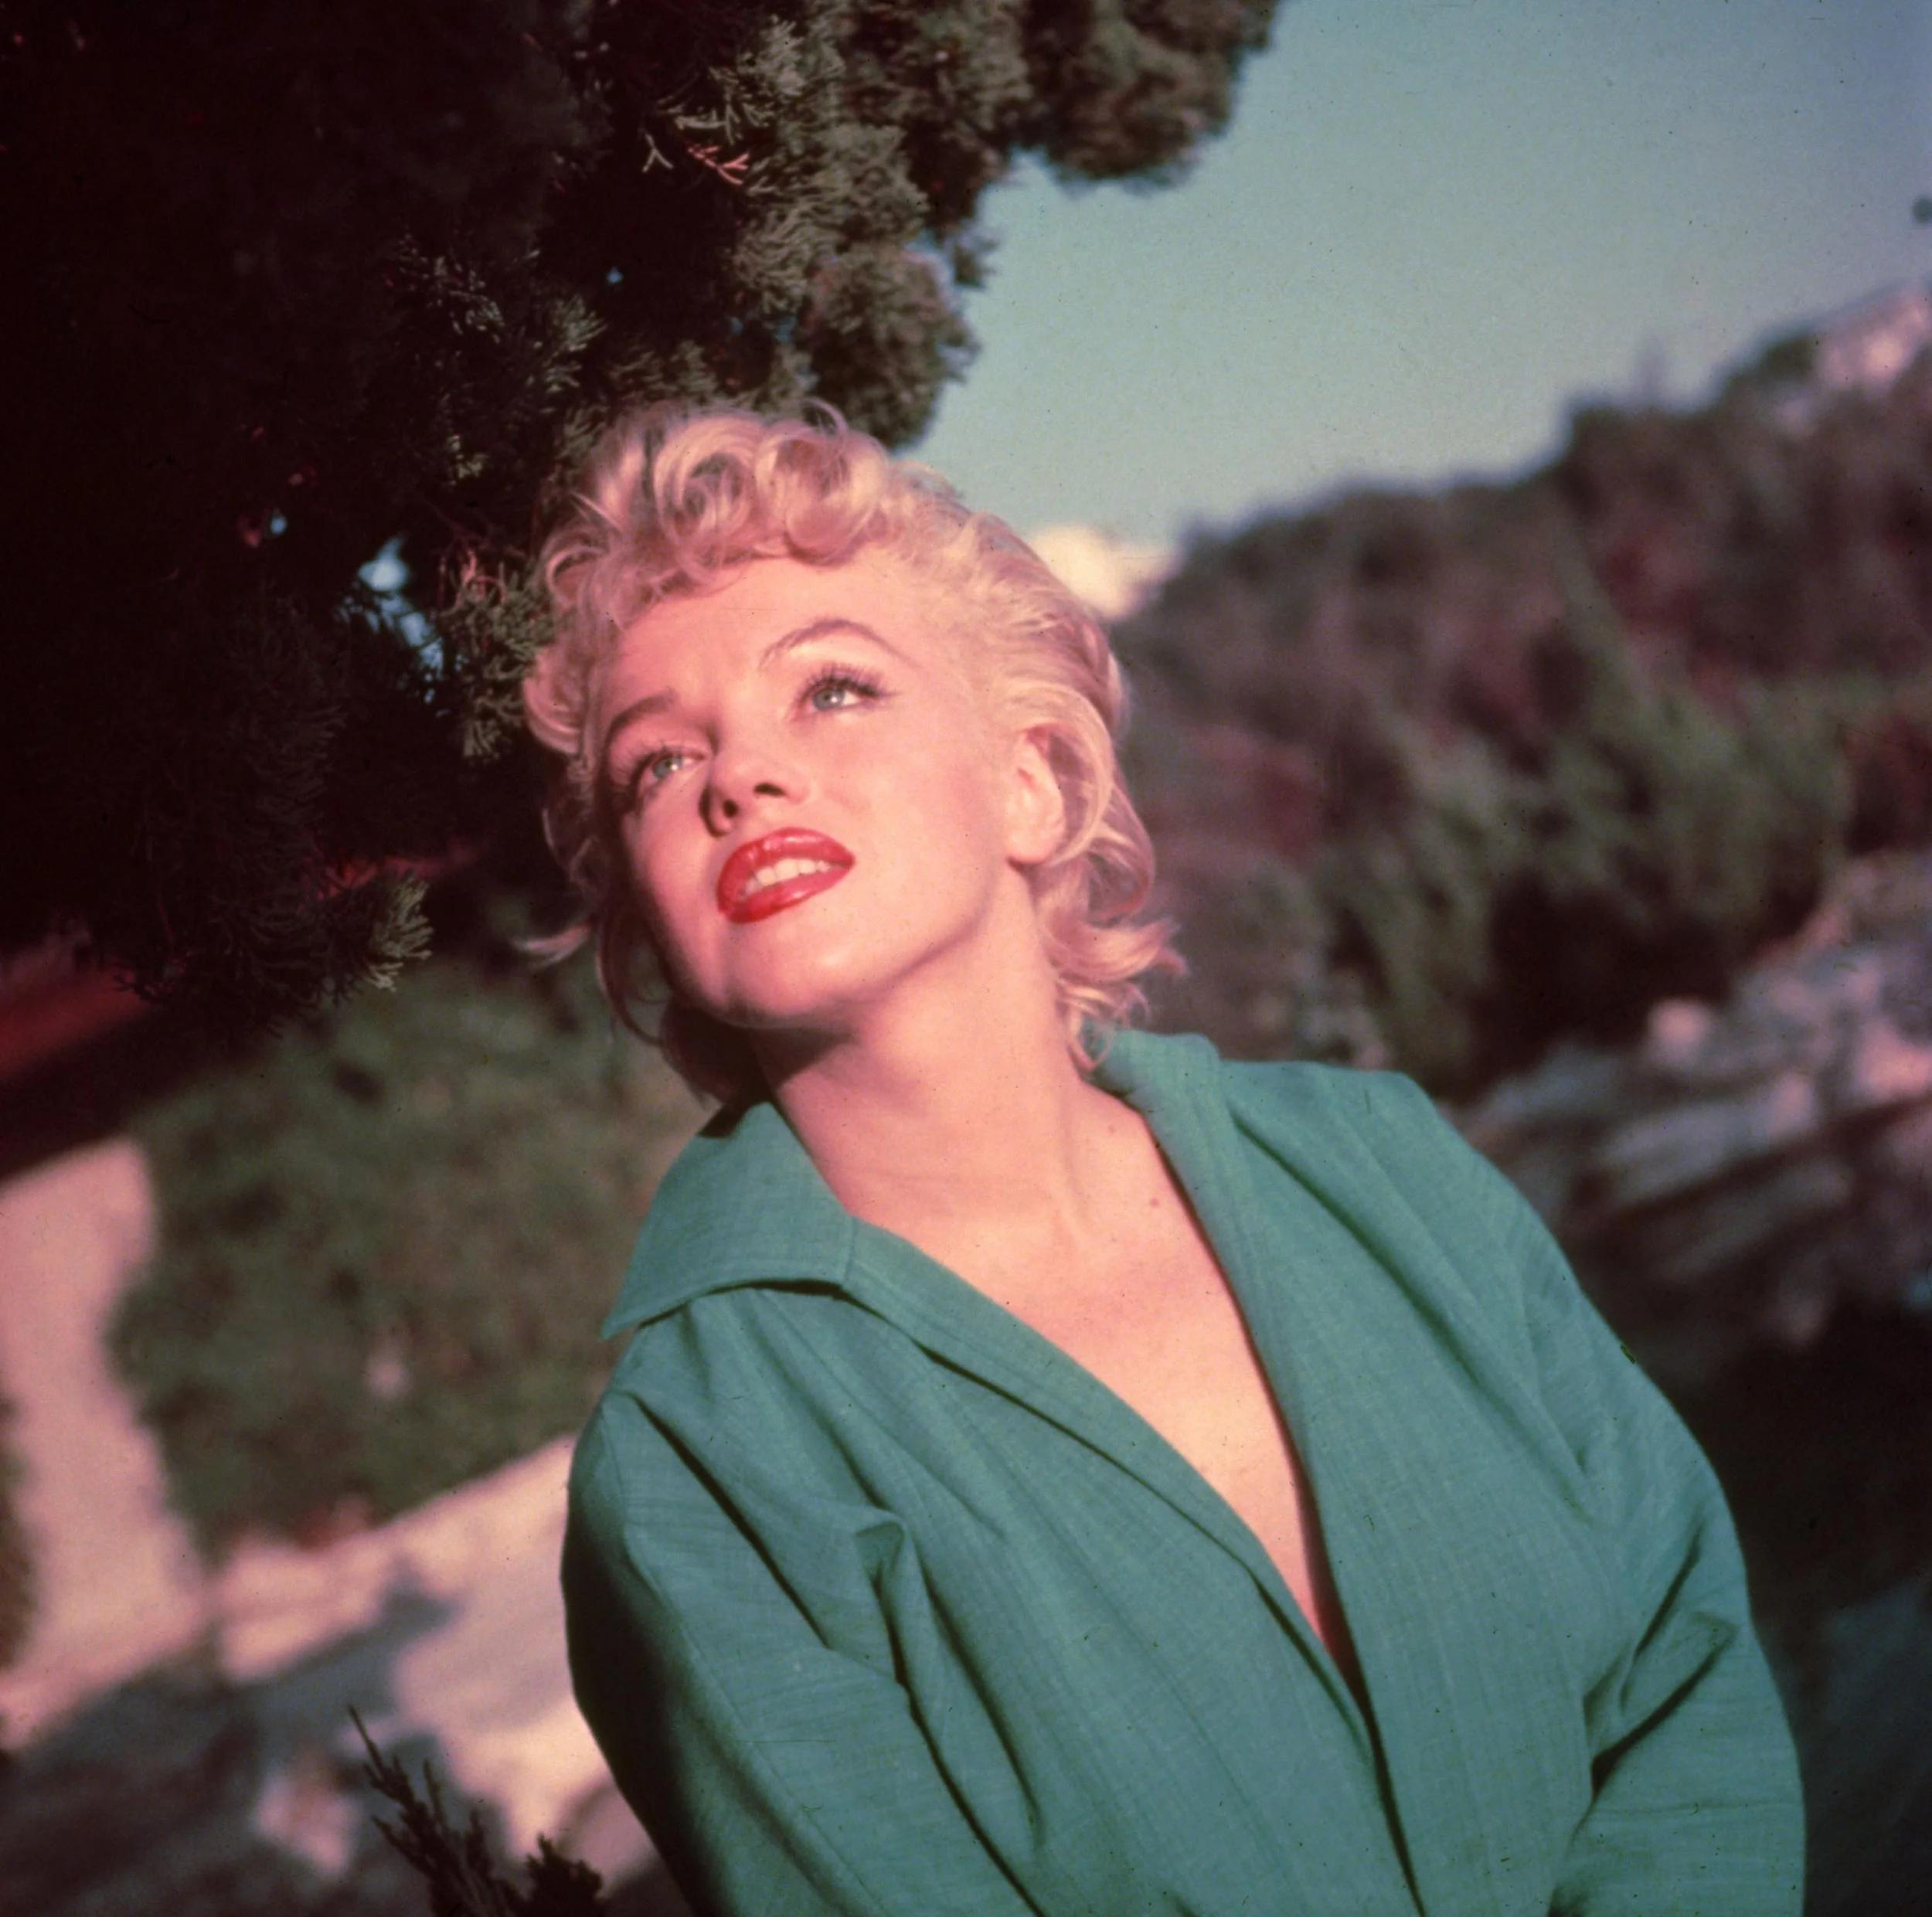 Marilyn Monroe S 21 Best Quotes On What Would Have Been Her 94th Birthday The Independent The Independent